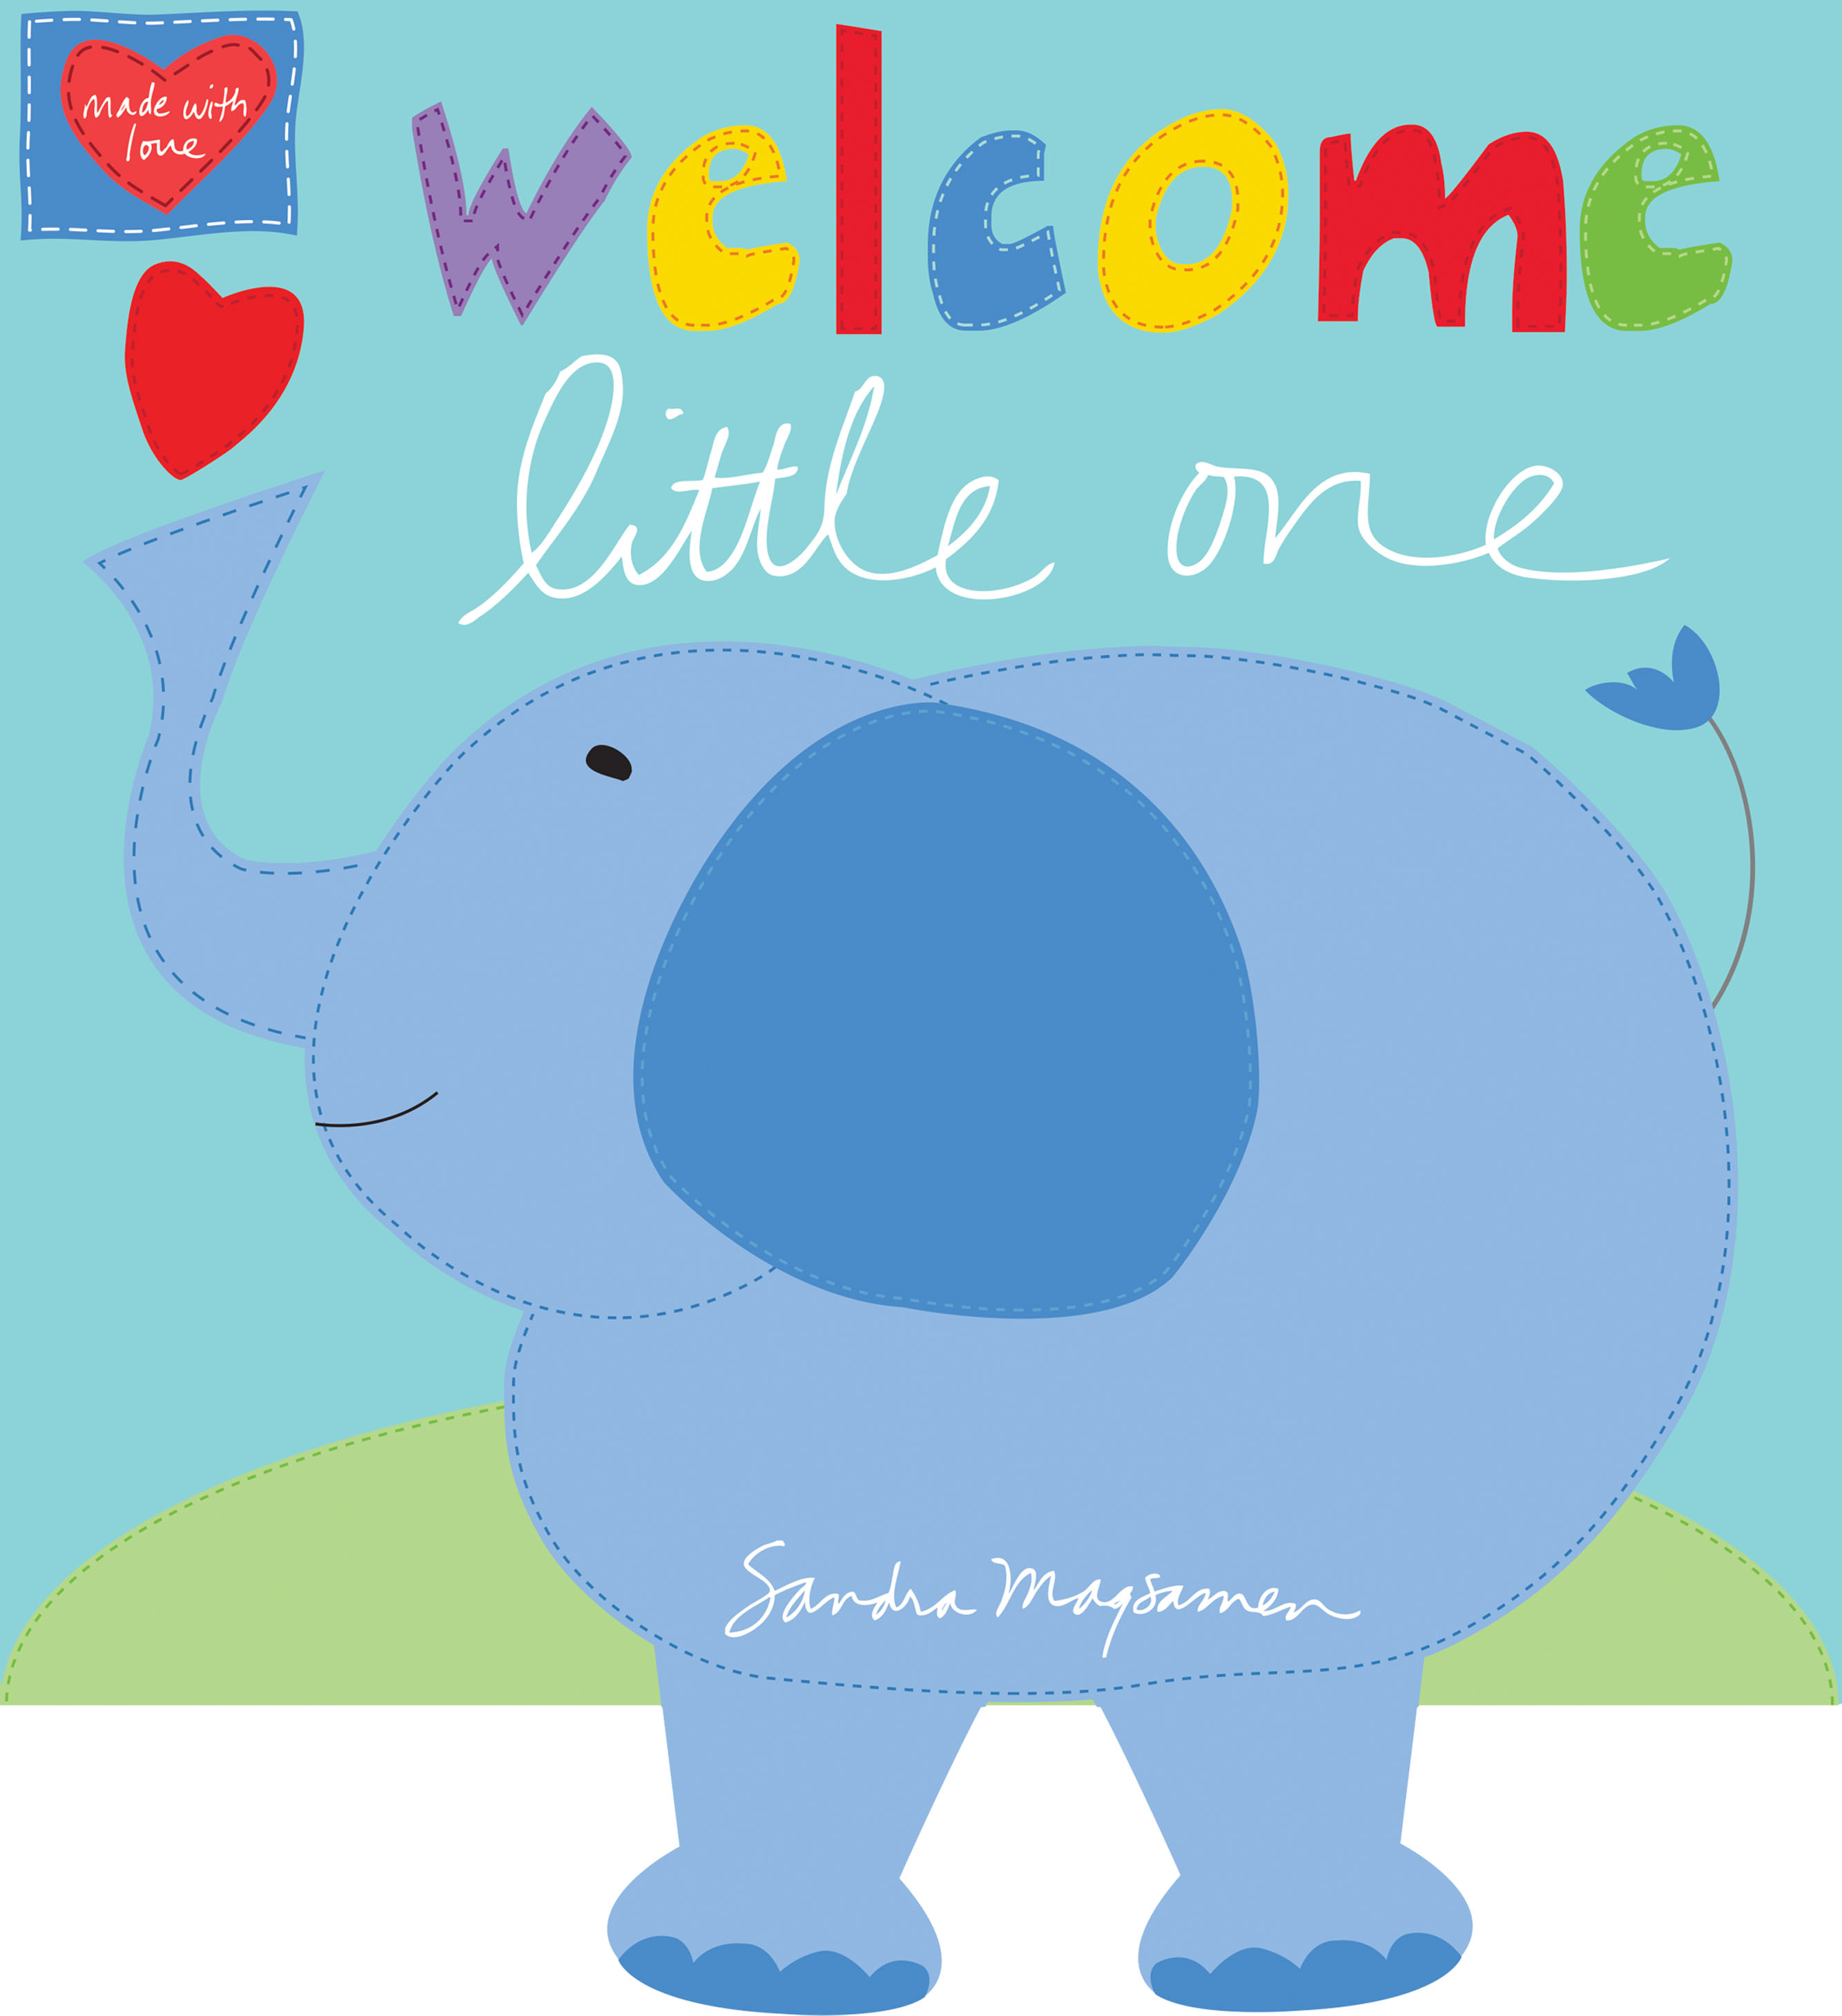 3375p-1-welcome-little-one-cover.jpg